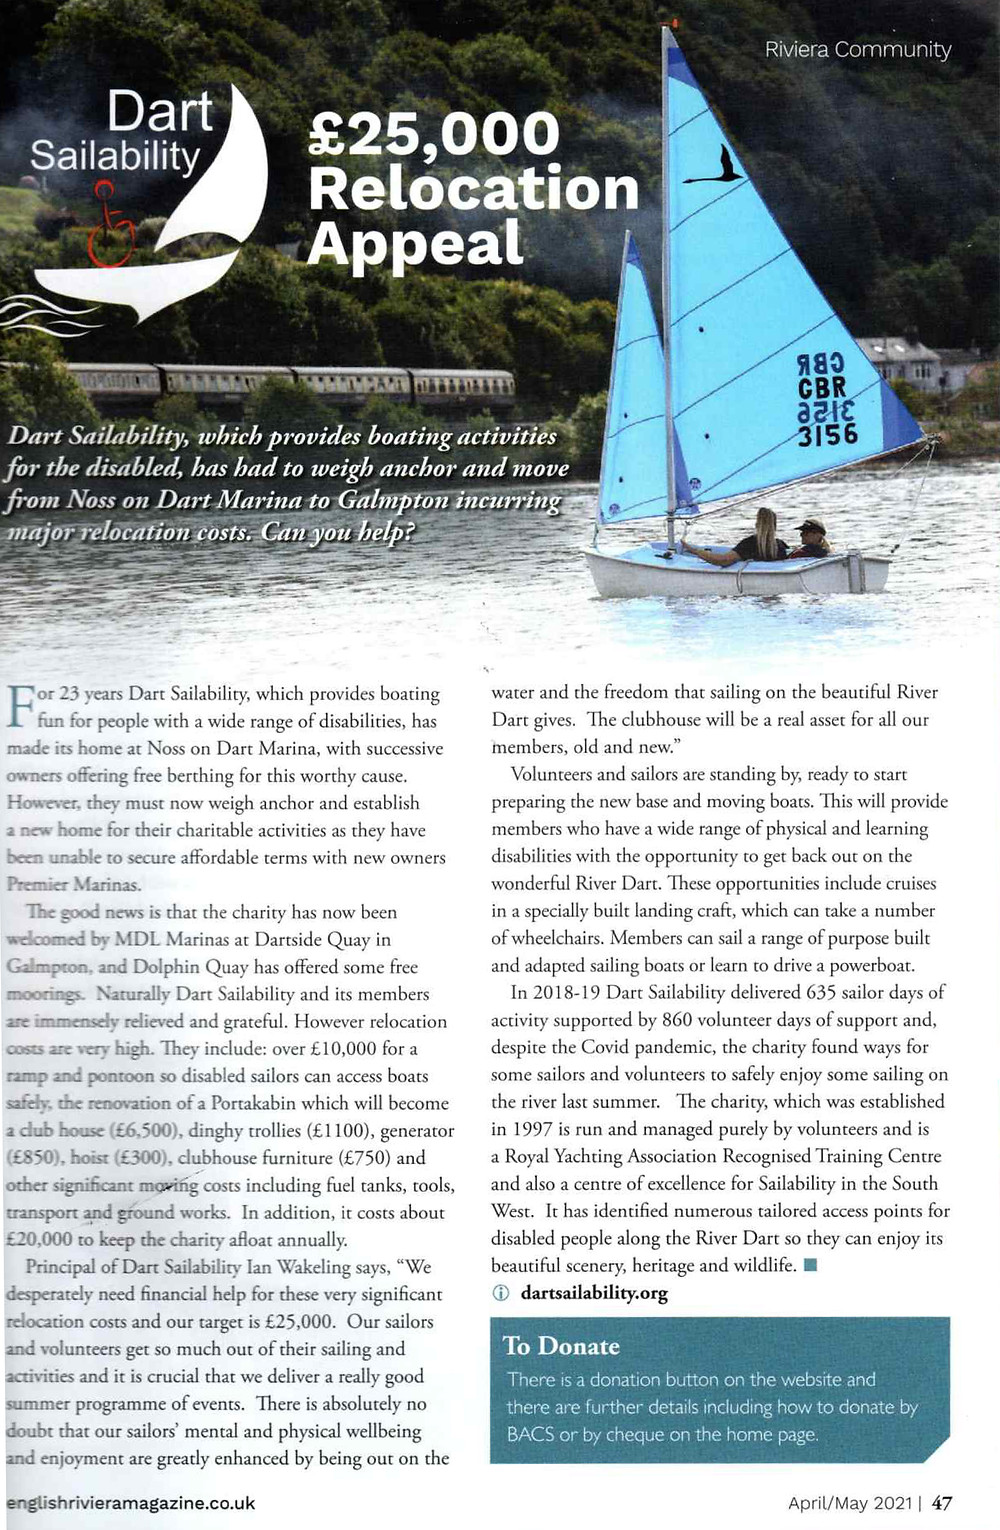 Riviera Community Magazine clipping about our relocation appeal